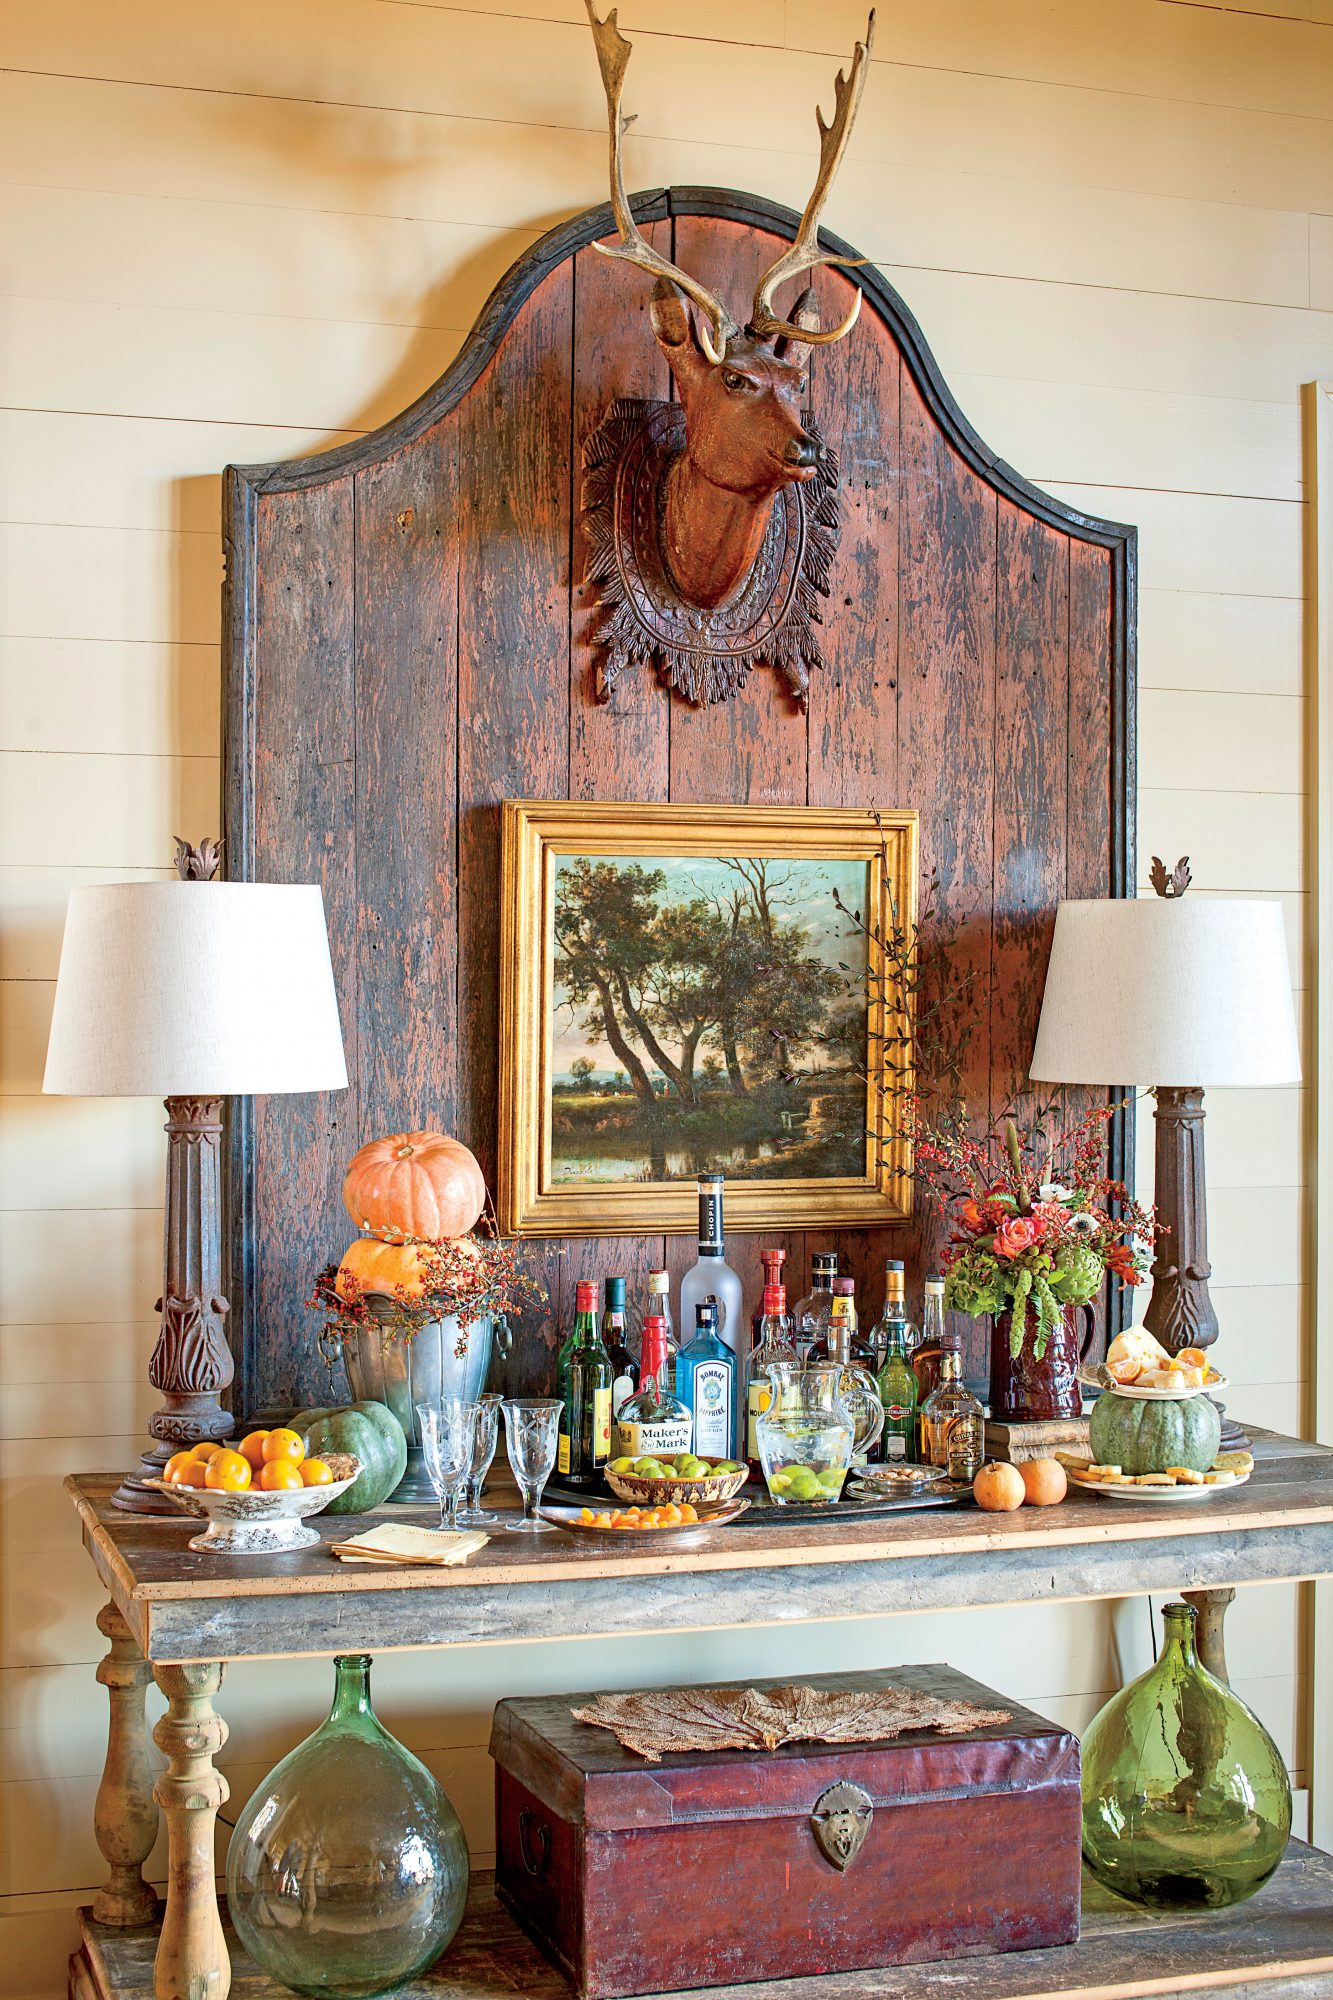 home decor high tone home decor catalogs.htm 90 fall decorating ideas for a beautiful autumn season southern  90 fall decorating ideas for a